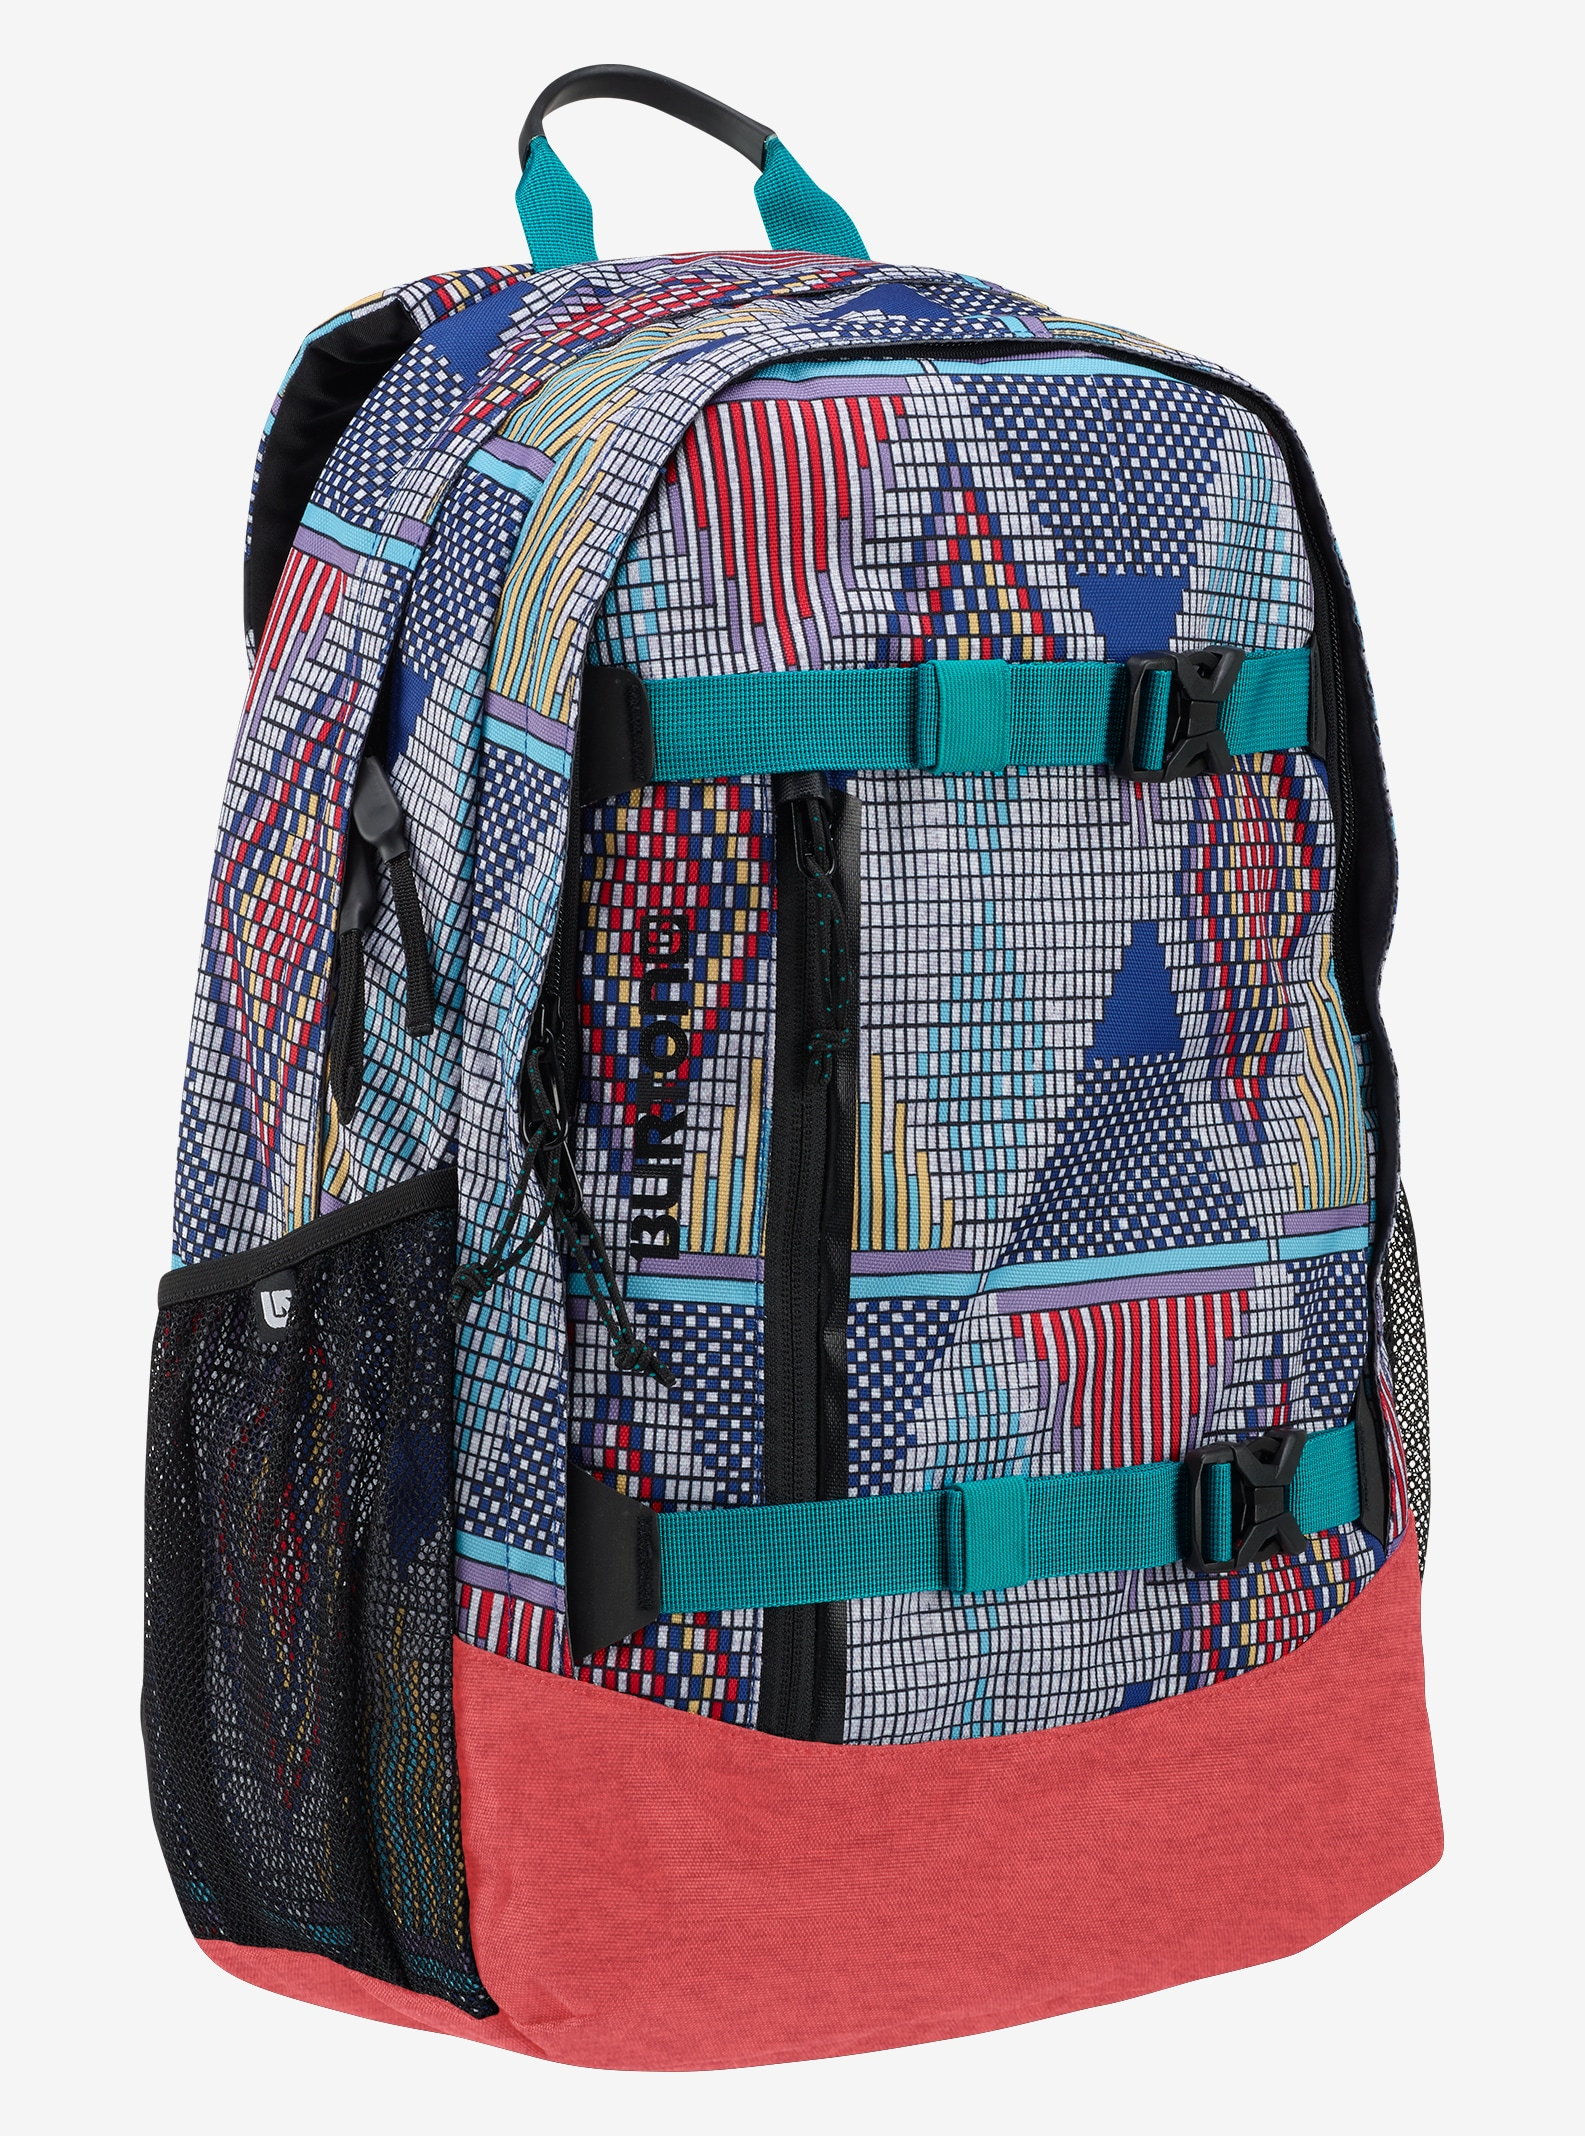 Burton Women's Day Hiker 25L Backpack shown in De Geo Print